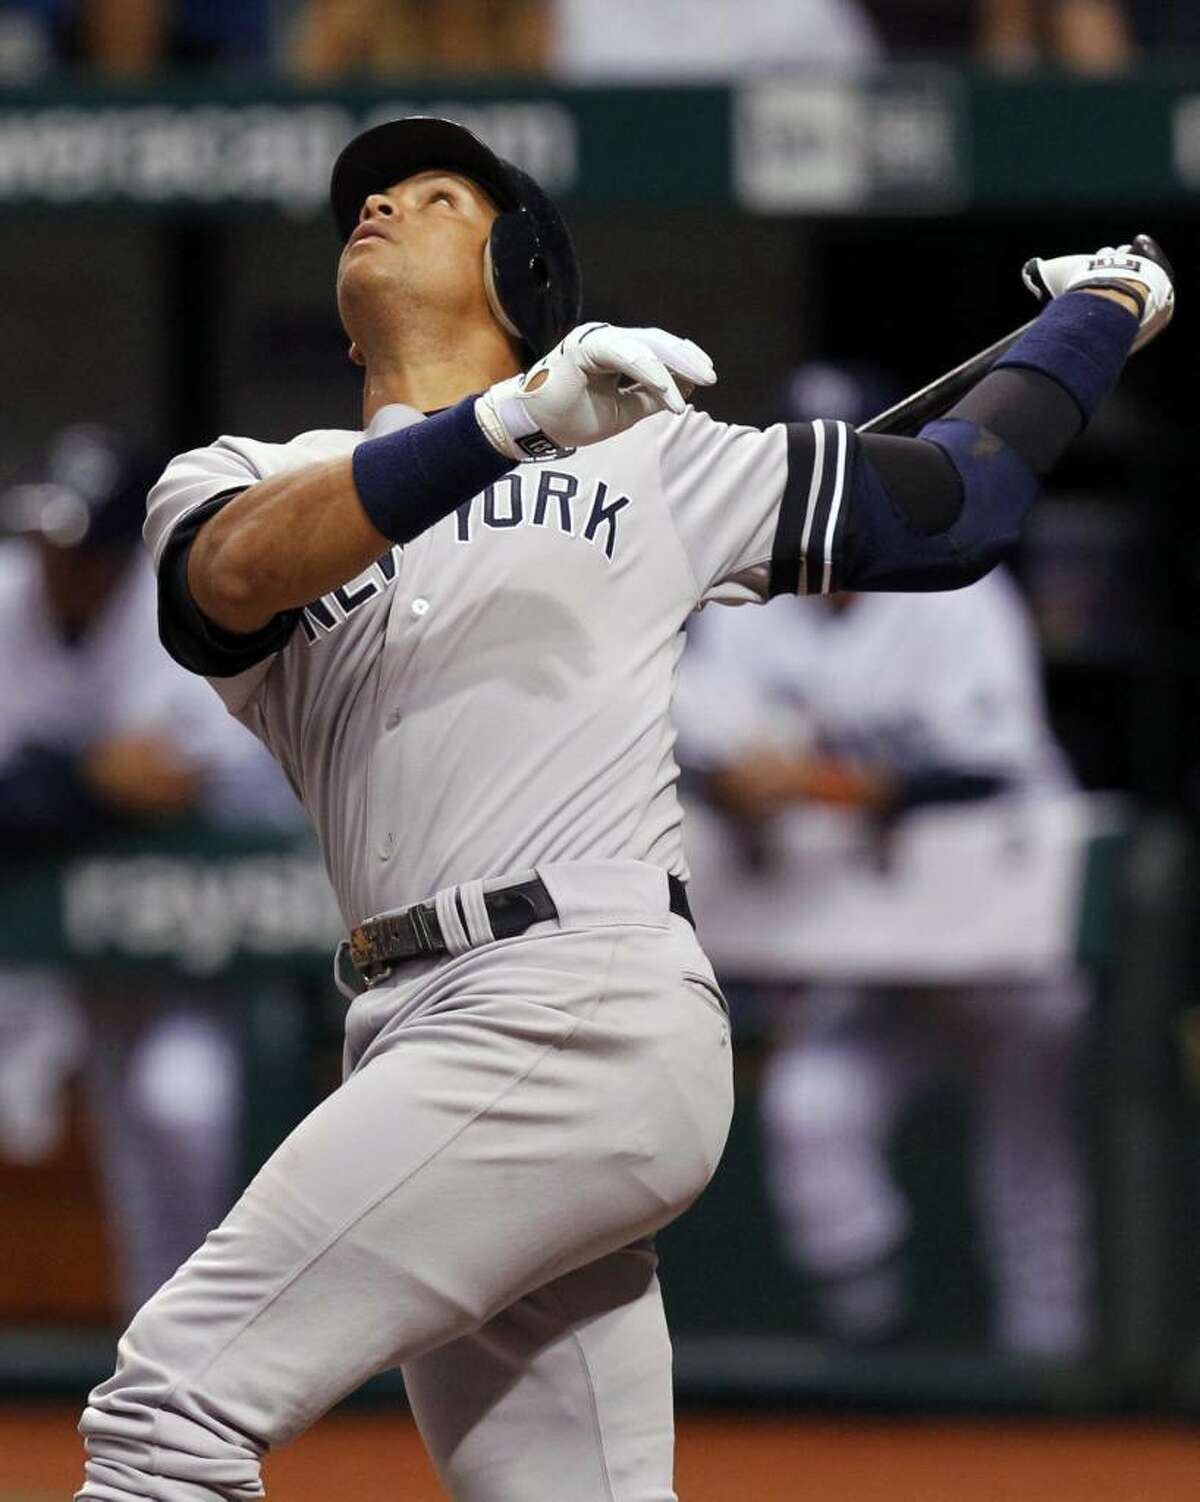 New York Yankees' Alex Rodriguez pops up in the sixth inning of a baseball game against the Tampa Bay Rays, Friday, July 30, 2010, in St. Petersburg, Fla. (AP Photo/Mike Carlson)